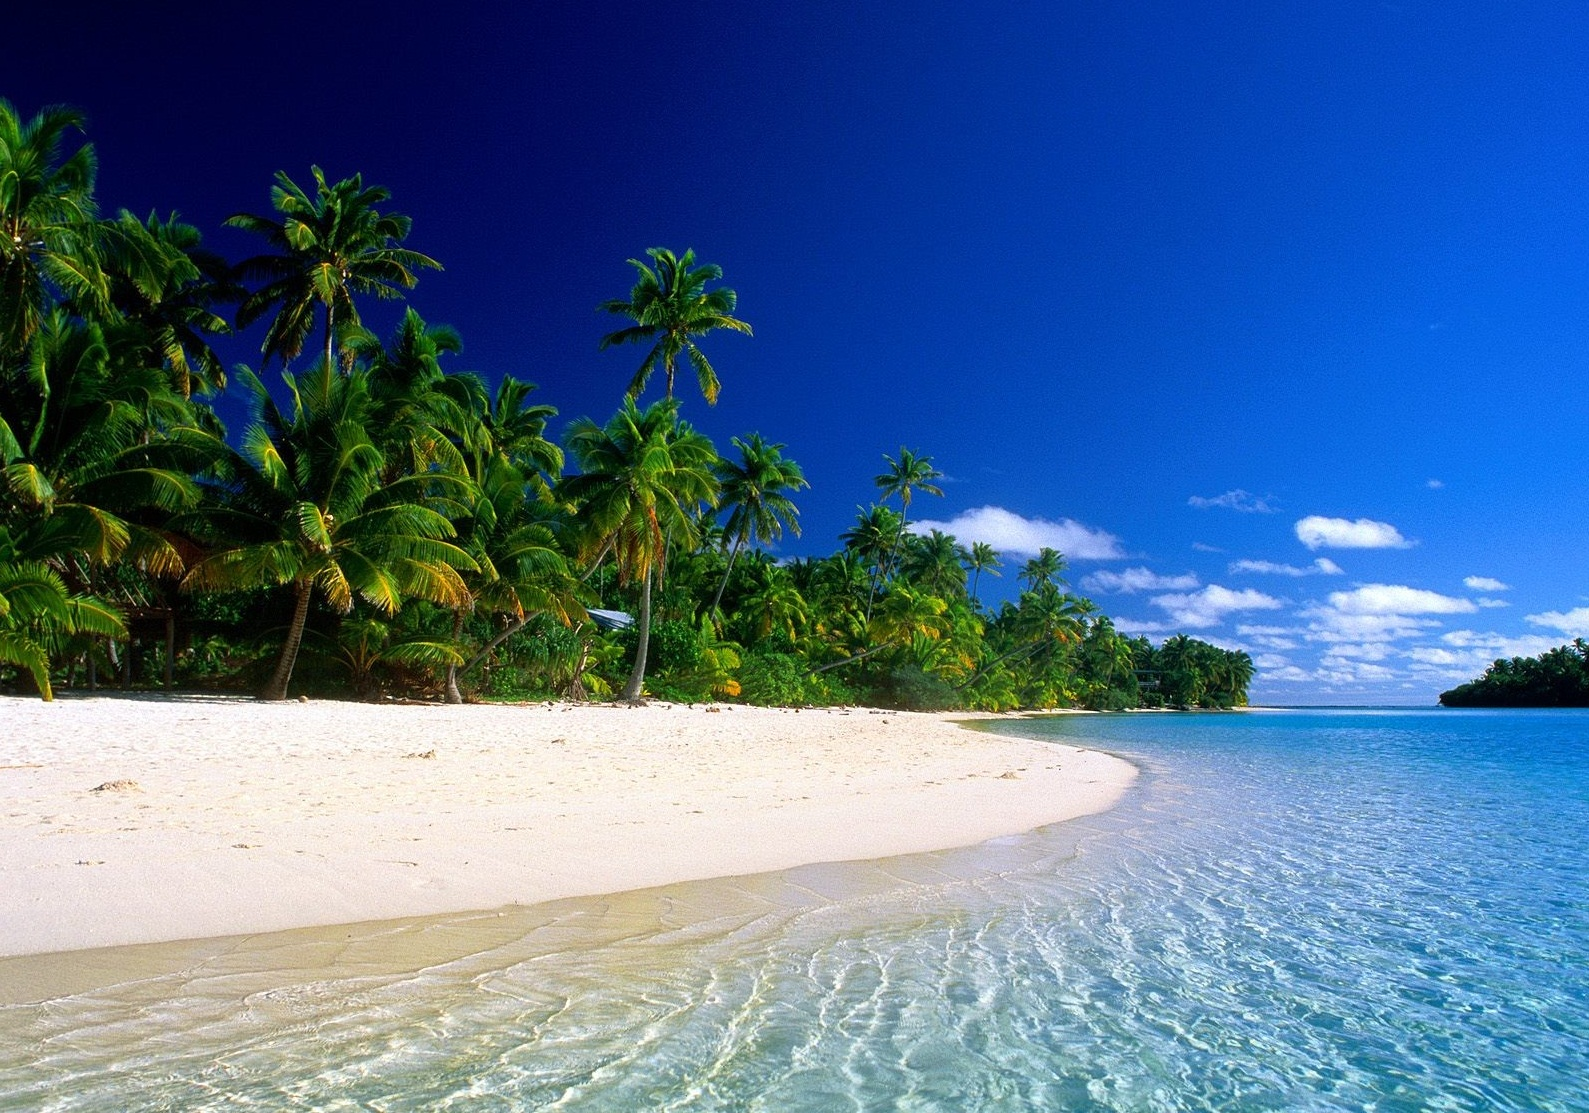 10 Best Tropical Beach Desktop Backgrounds Full Hd 1920: Beaches HD Wallpapers